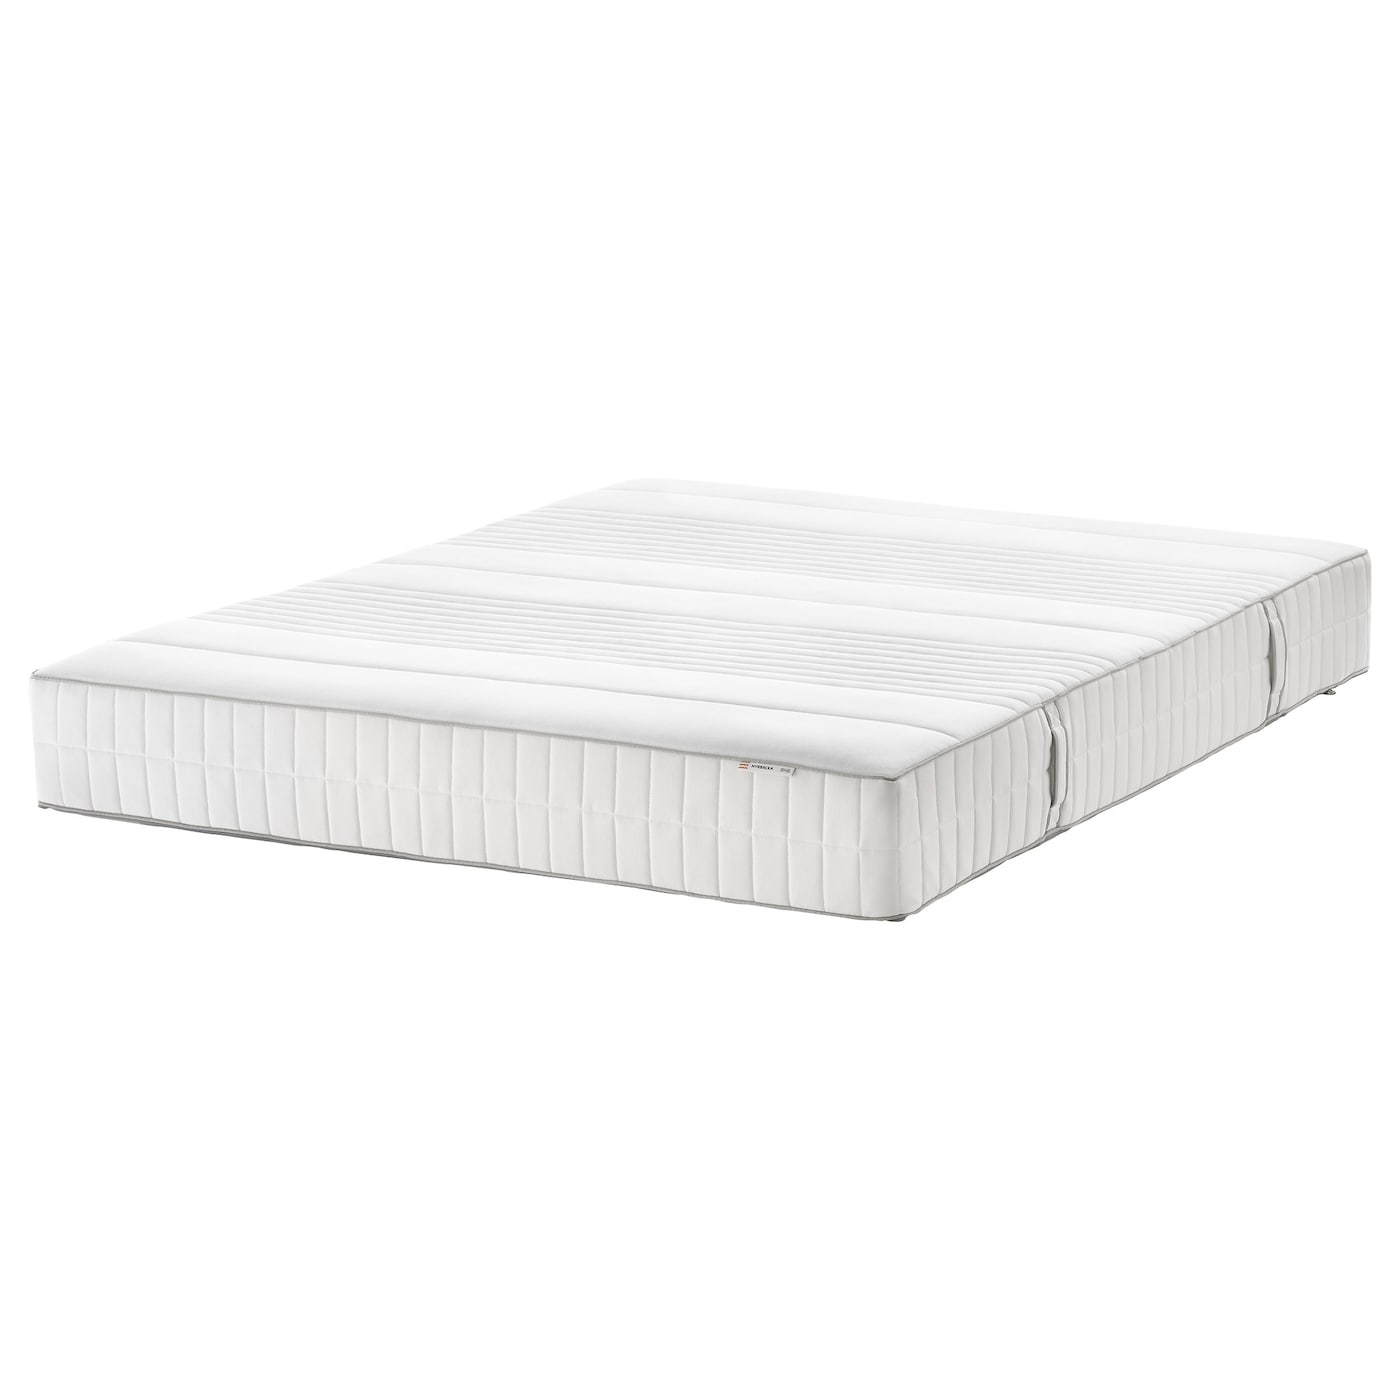 myrbacka matelas latex mi ferme blanc 160 x 200 cm ikea. Black Bedroom Furniture Sets. Home Design Ideas